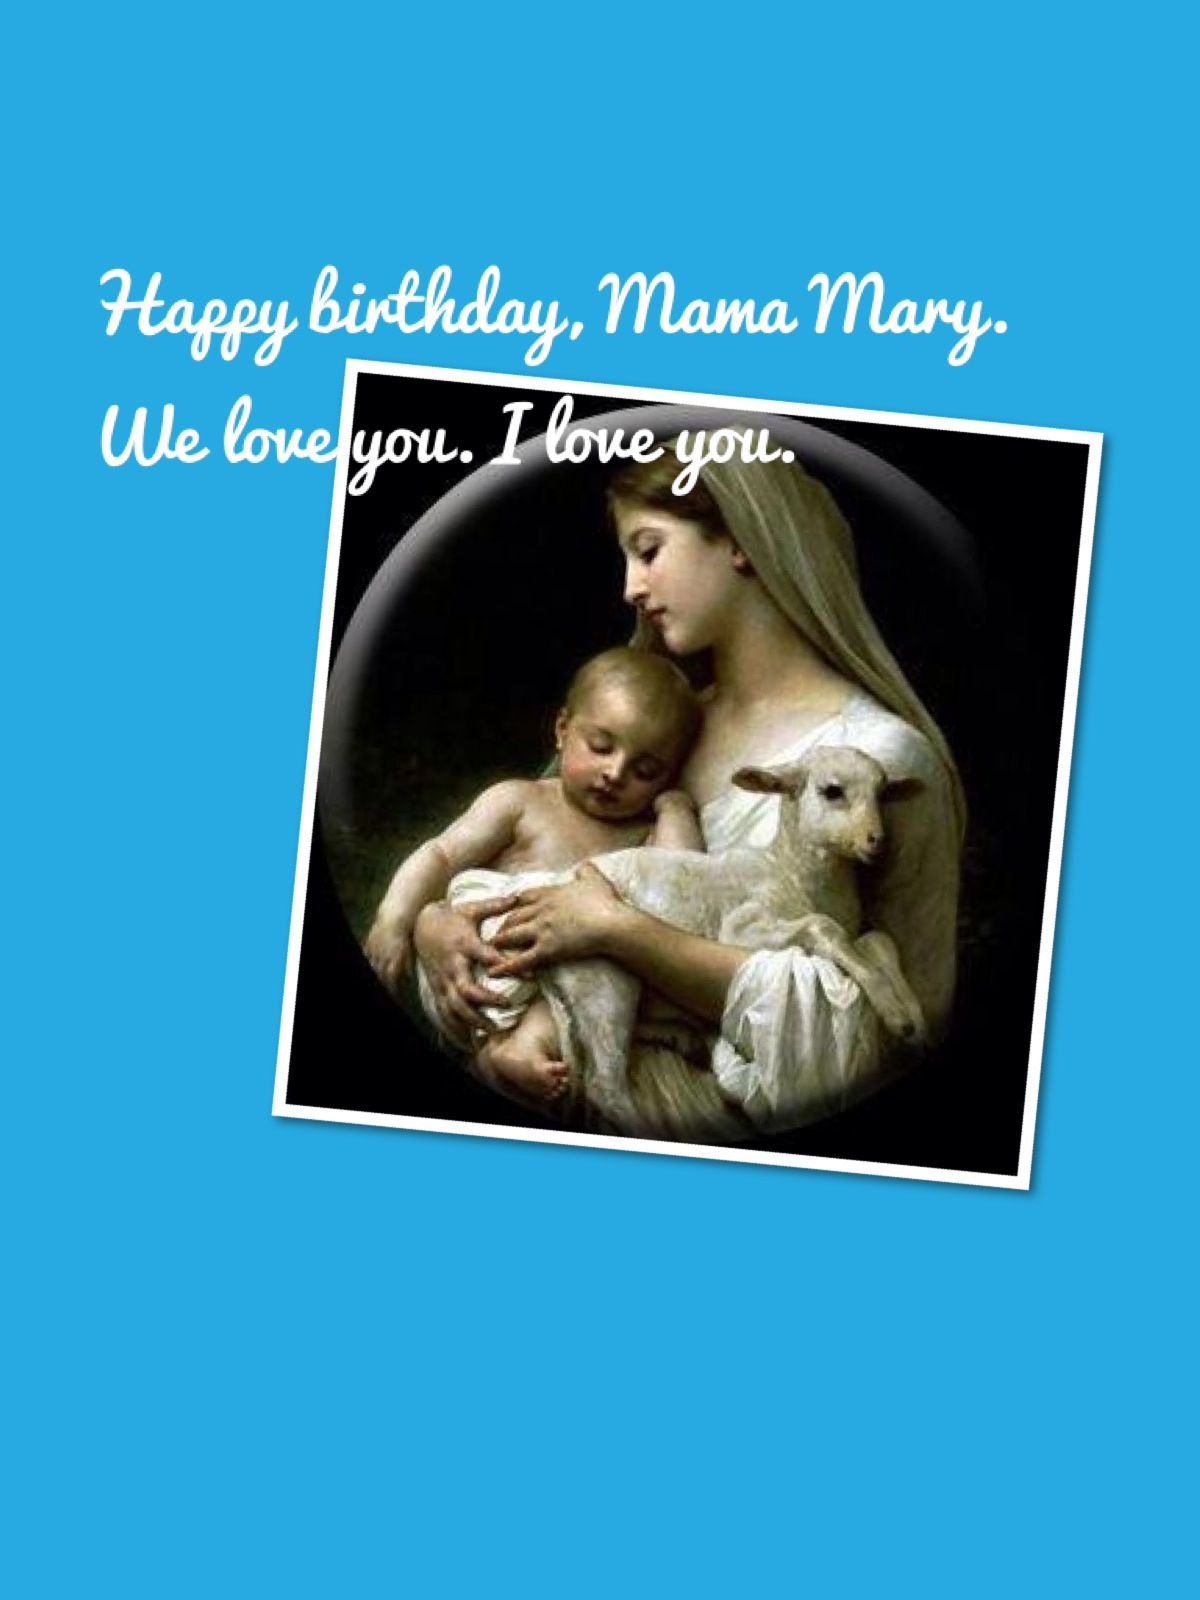 Happy Birthday, Mama Mary. We love you, i love you. Mama